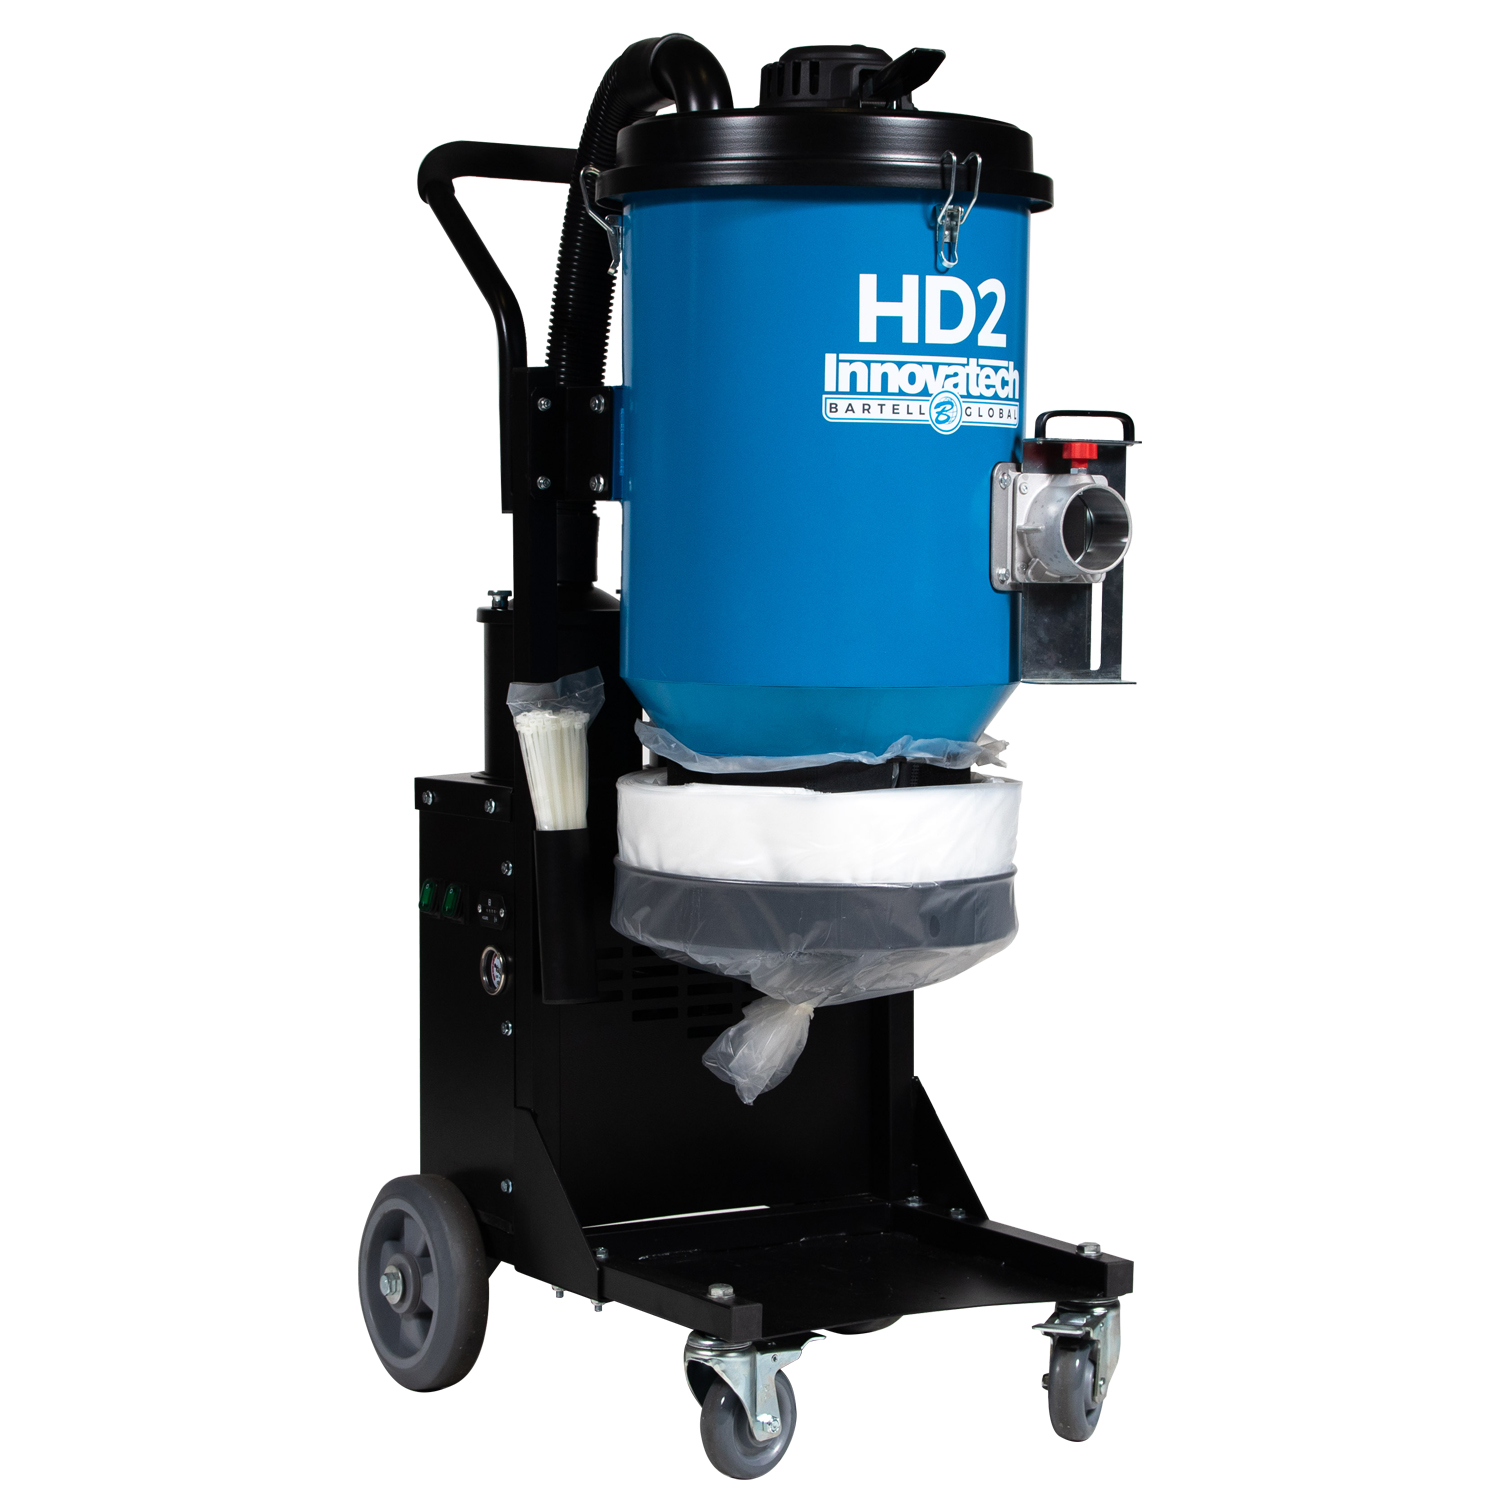 Innovatech HD2 Dust Collector, HD2, Dust Collector, Innovatech HD2